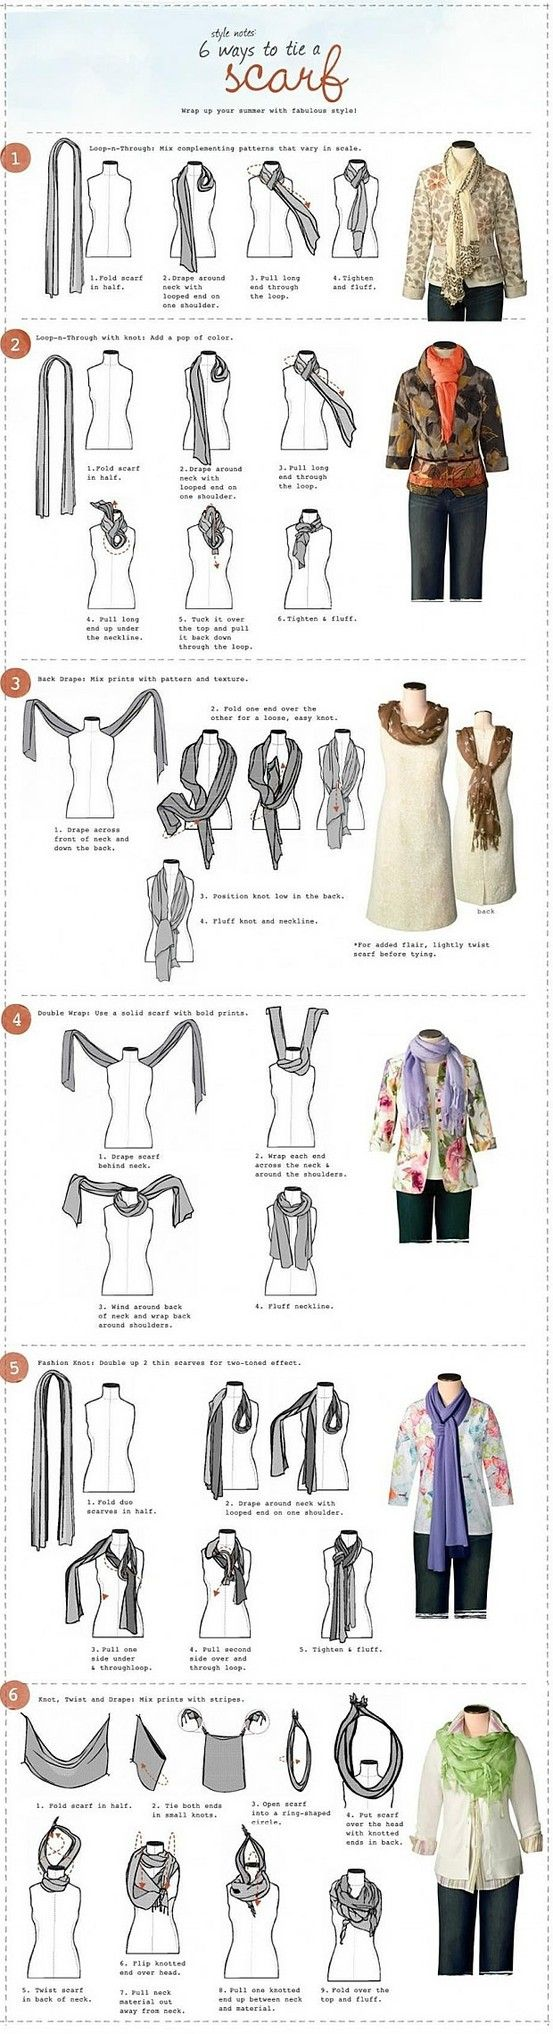 Different ways to tie a scarf @Tony Gebely Gebely Gebely Gebely Gebely